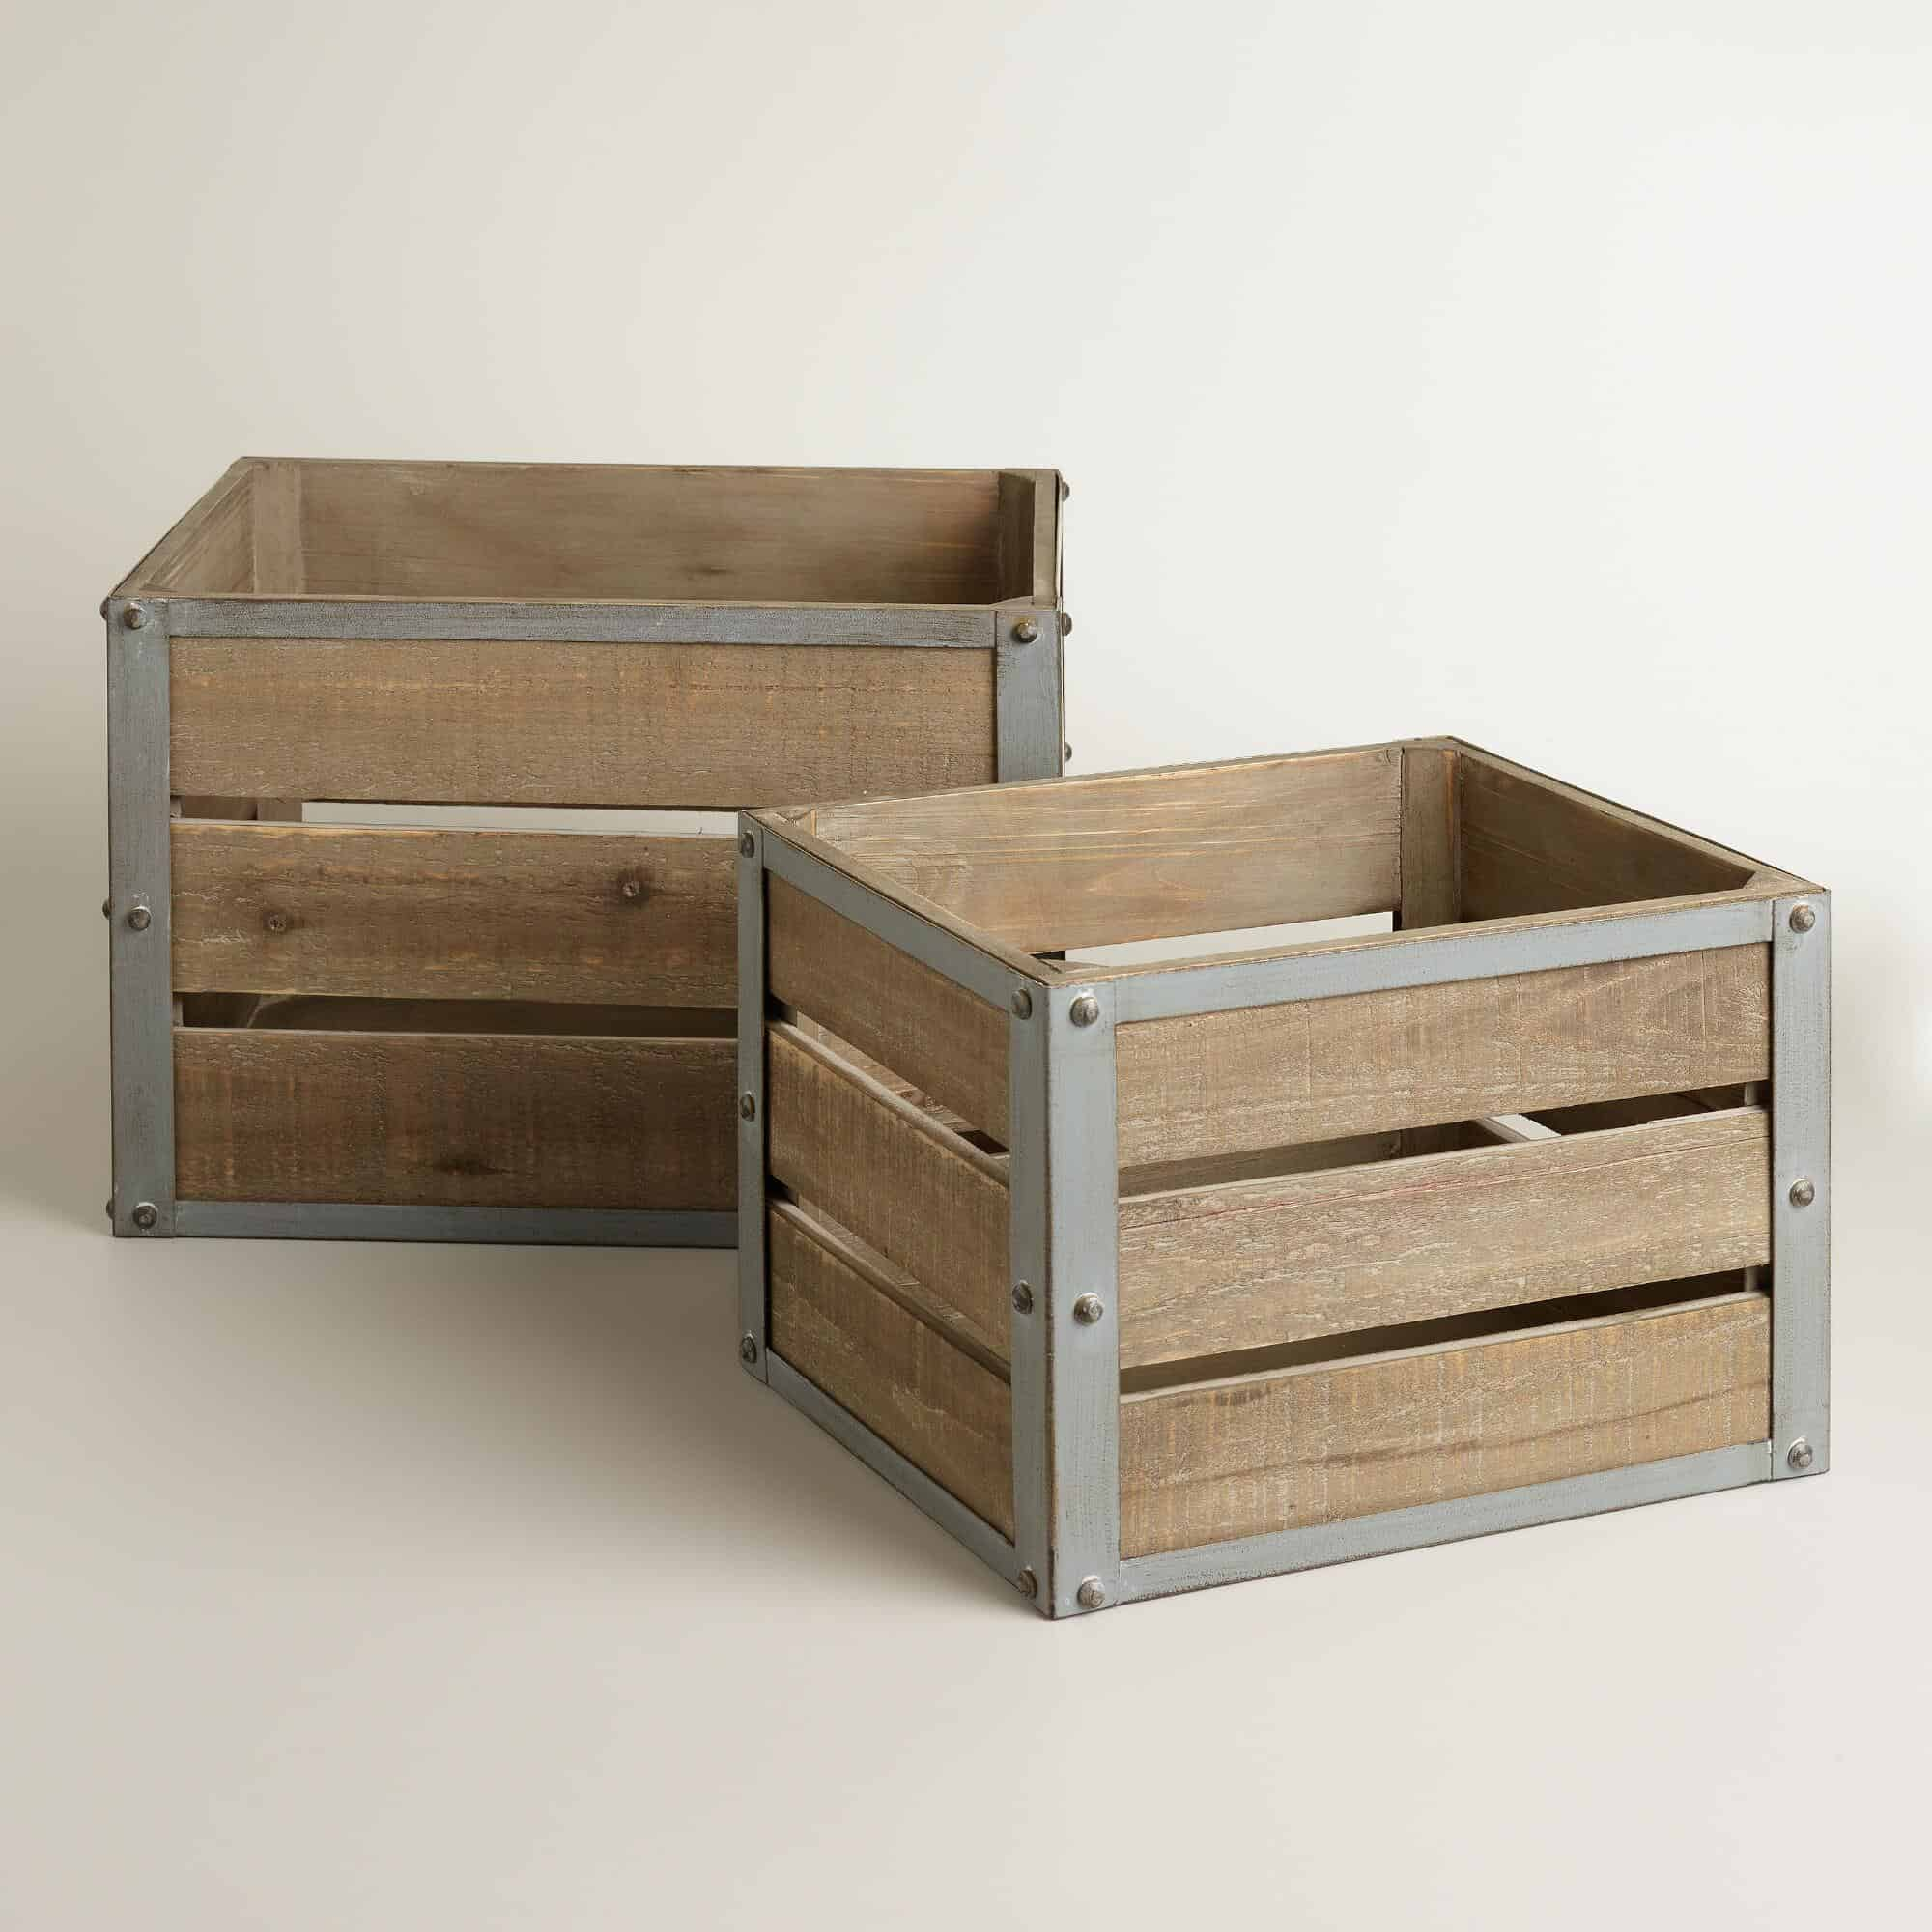 costplus crates